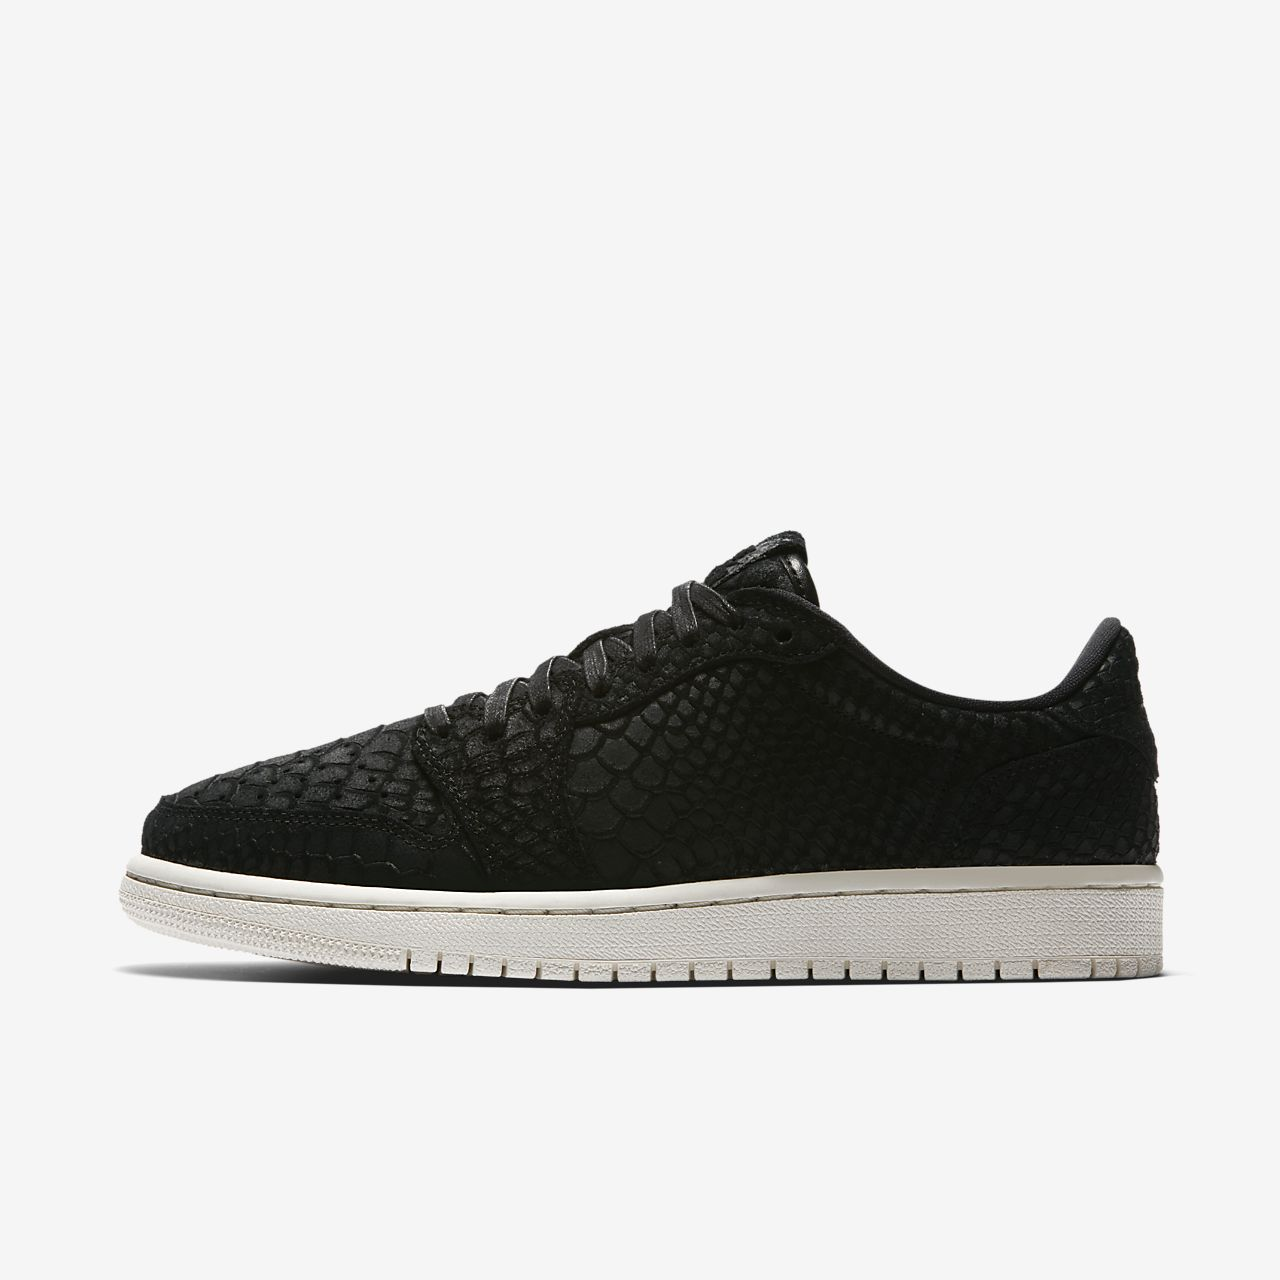 jordan 1 retro low nz